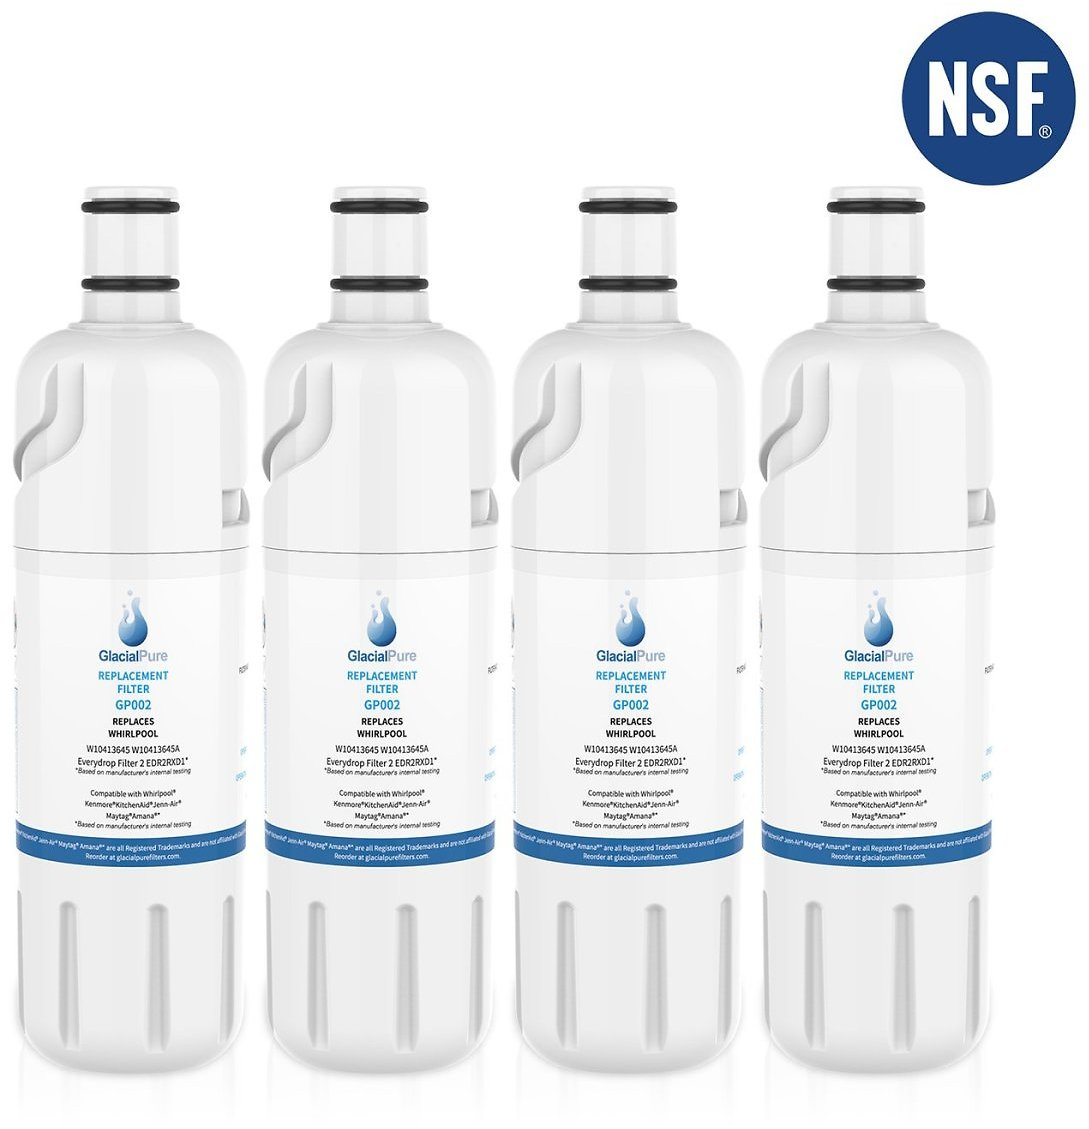 W10413645A Water Filter, EDR2RXD1, Kenmore 9082, Whirlpool Water Filters For Refrigerator Water Filters Replacement (4 Pack)